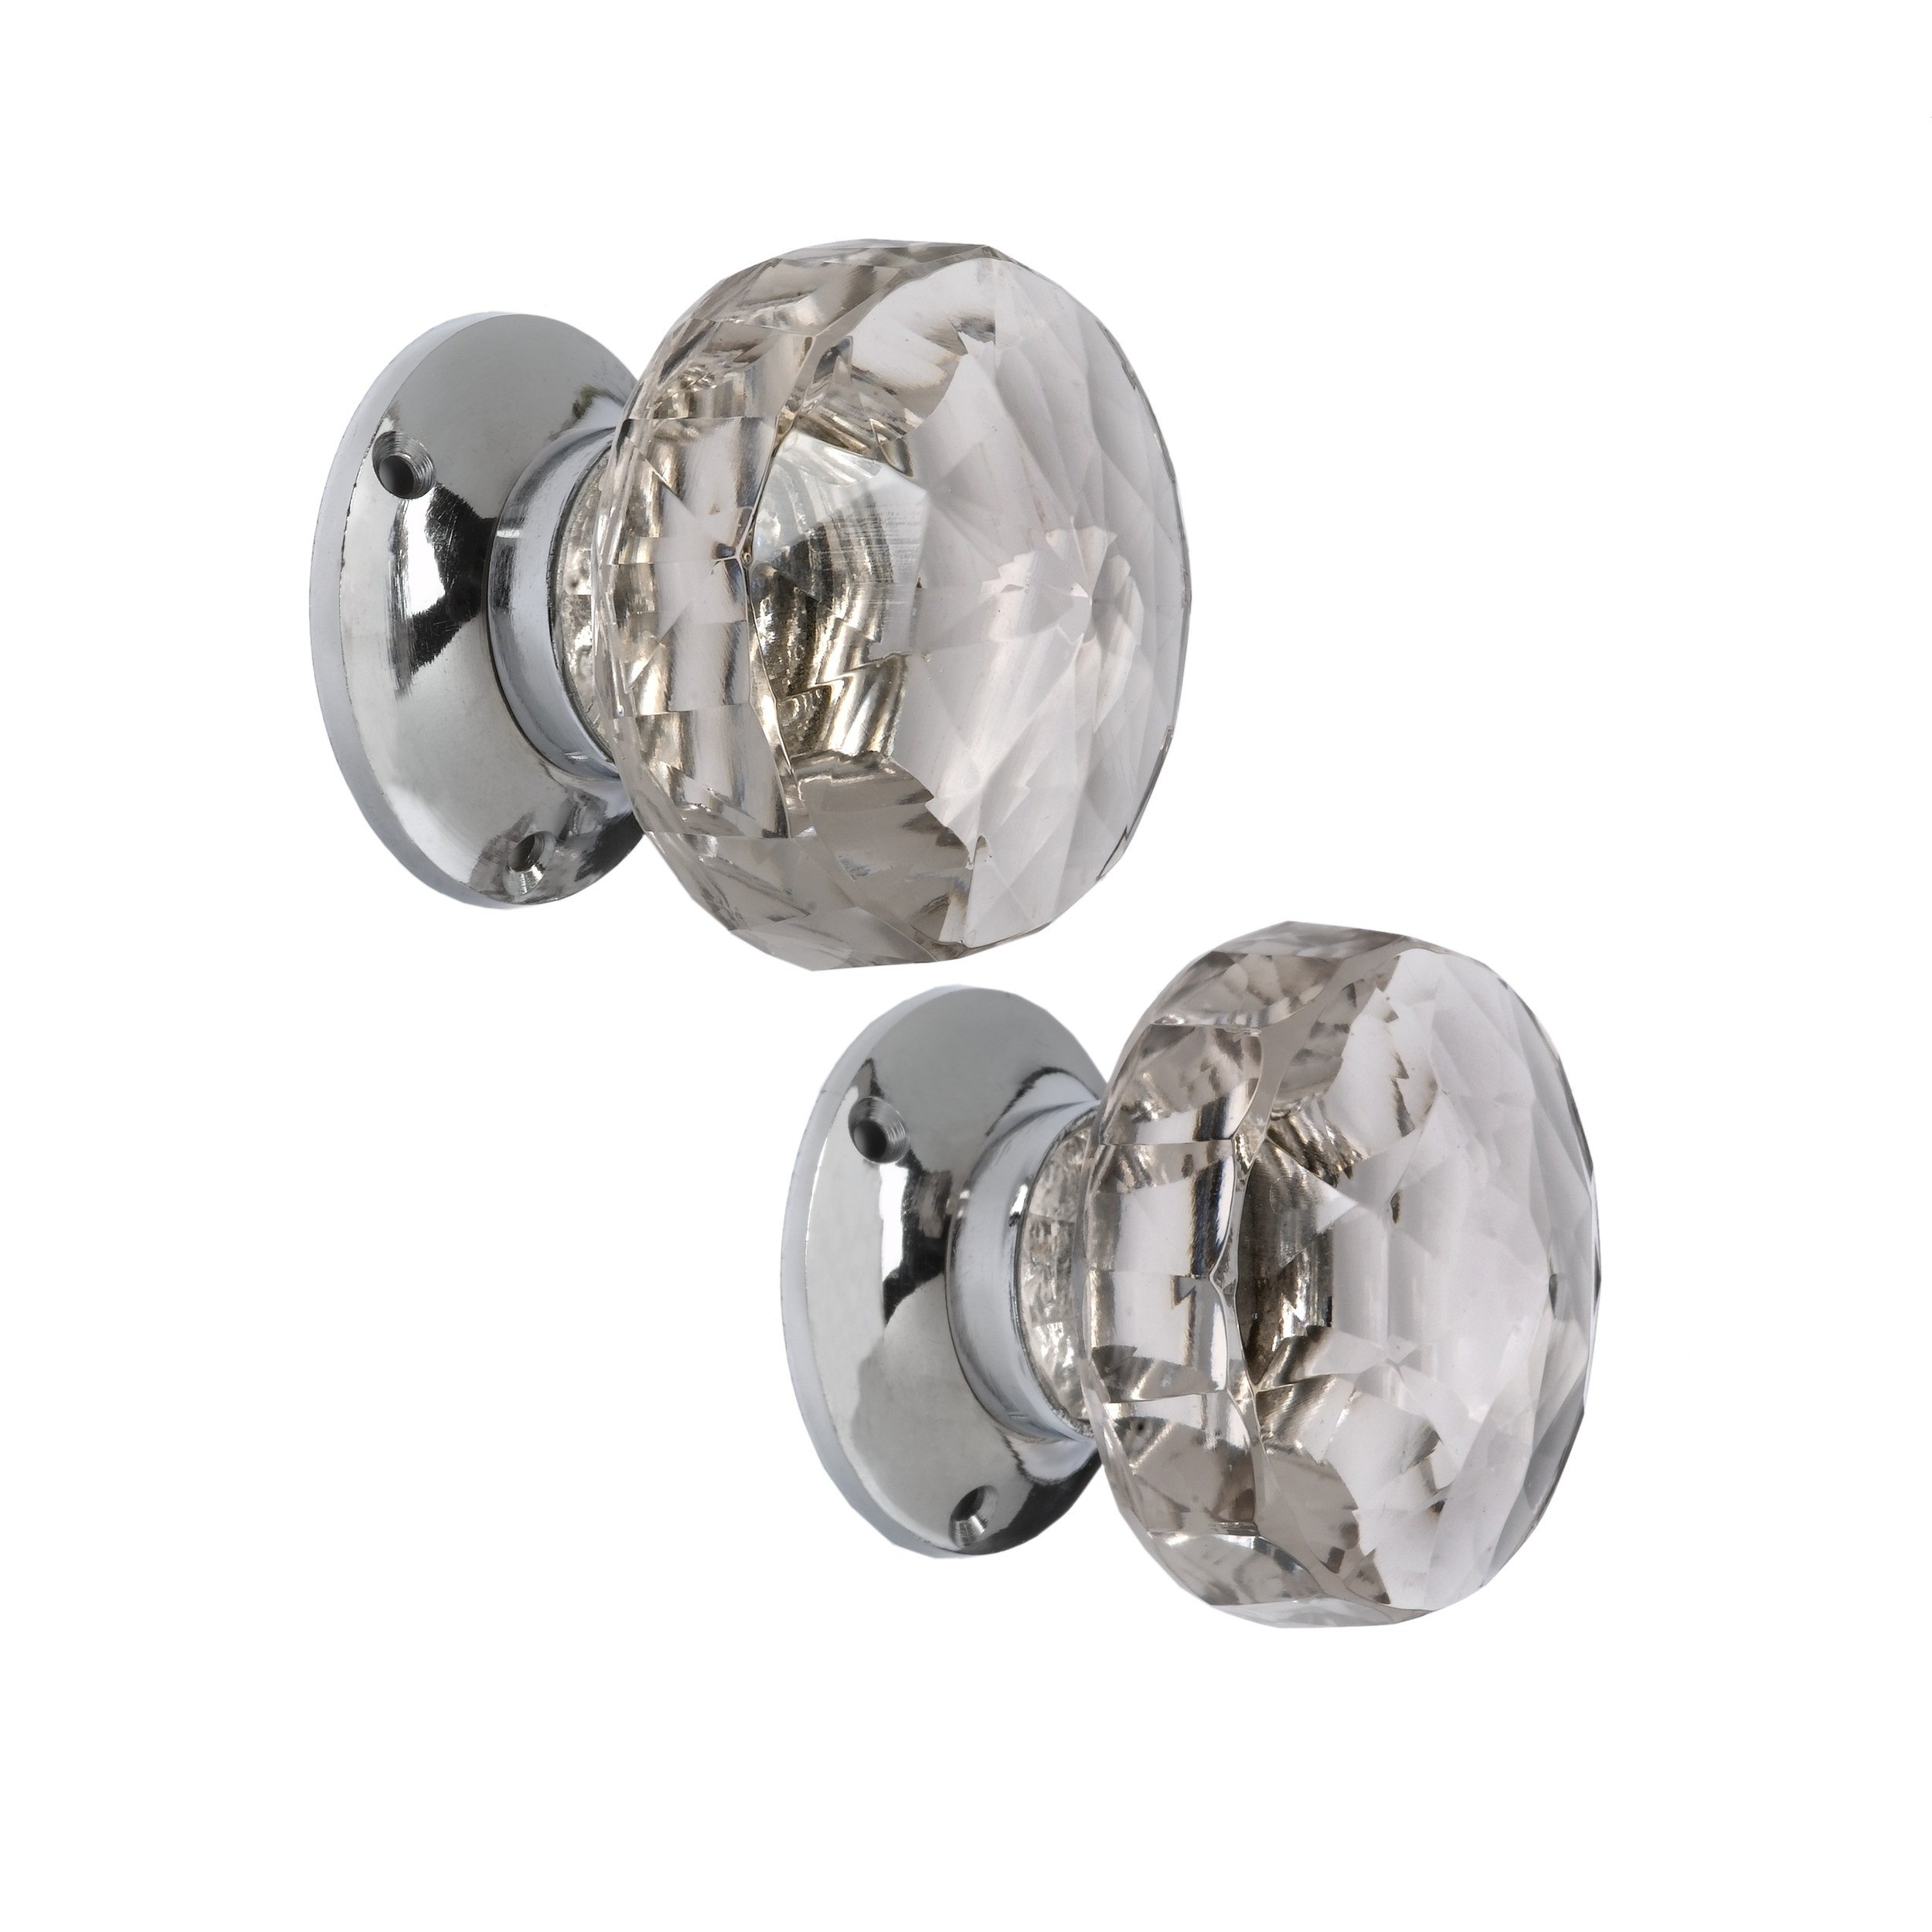 glass door knobs lowes photo - 1